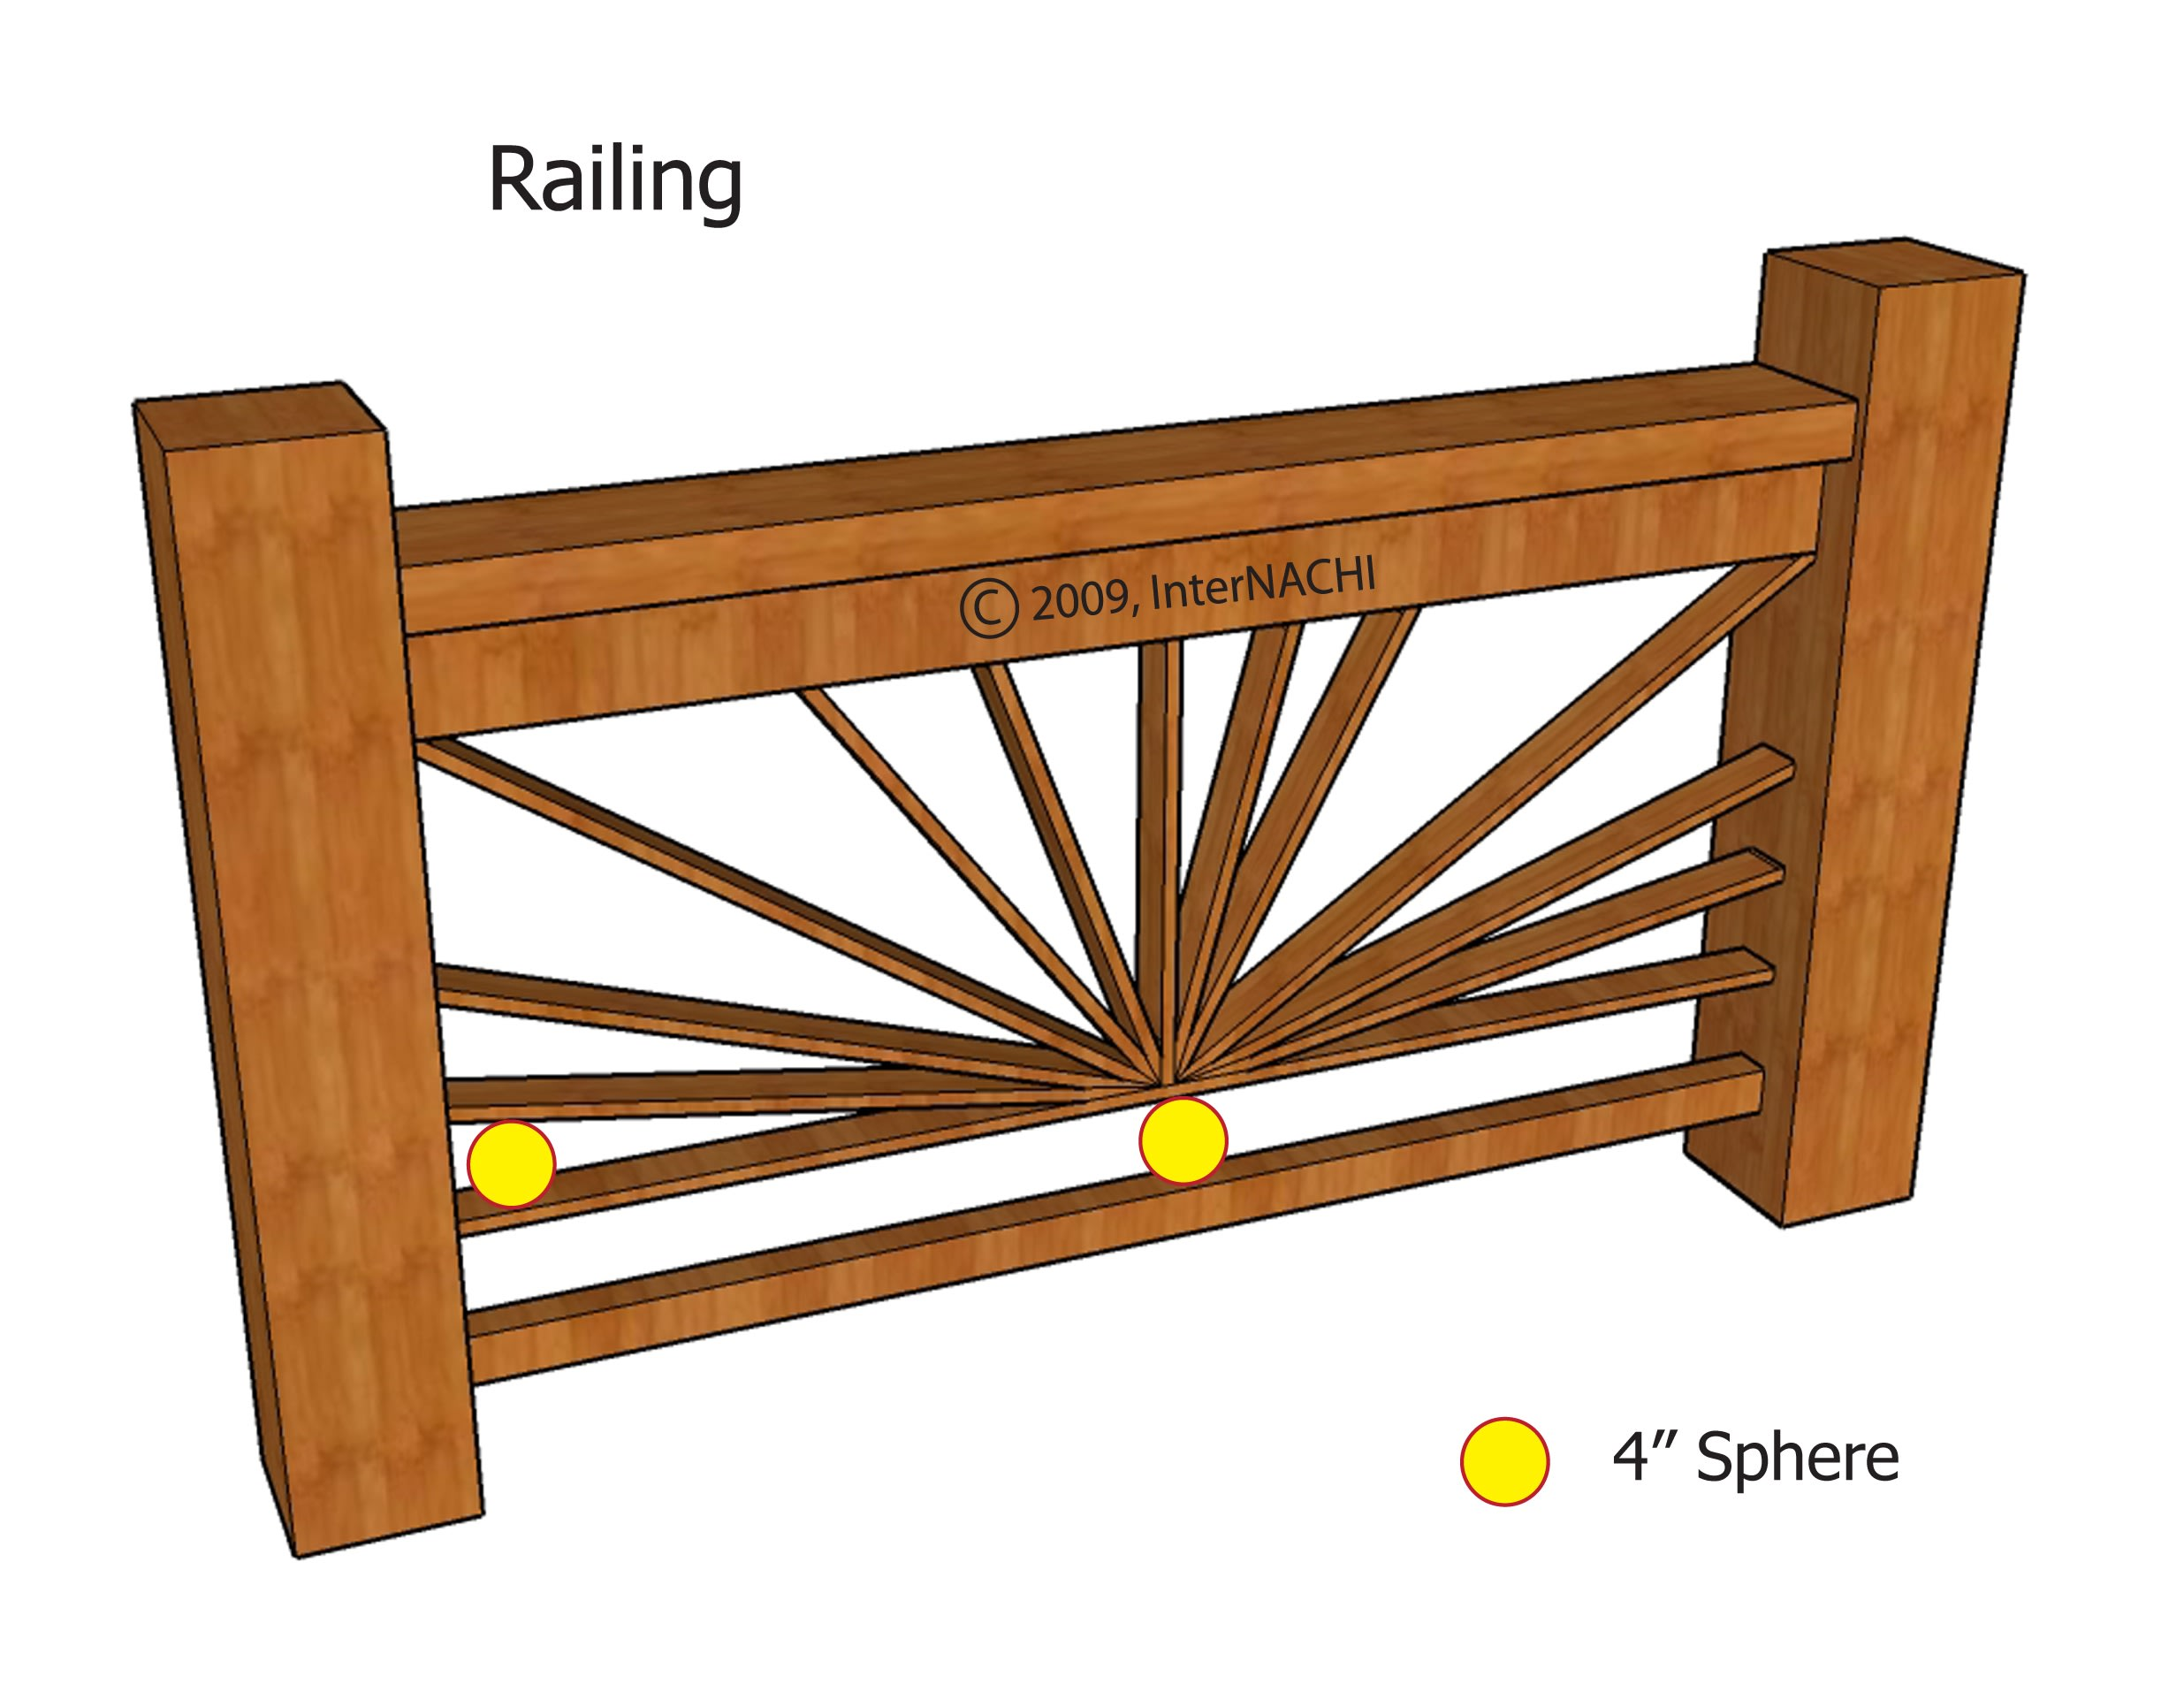 Guards must be constructed so that they prohibit smaller occupants, such as children, from falling through them. It should have supports, spindles, intermediate rails so that a 4-inch (102 mm) sphere cannot pass through it.